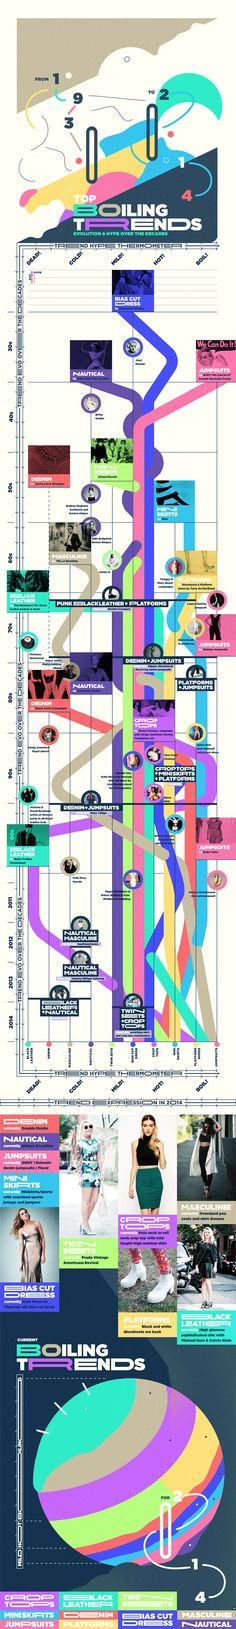 The Ultimate Fashion Infographic: The Last Century In Trends